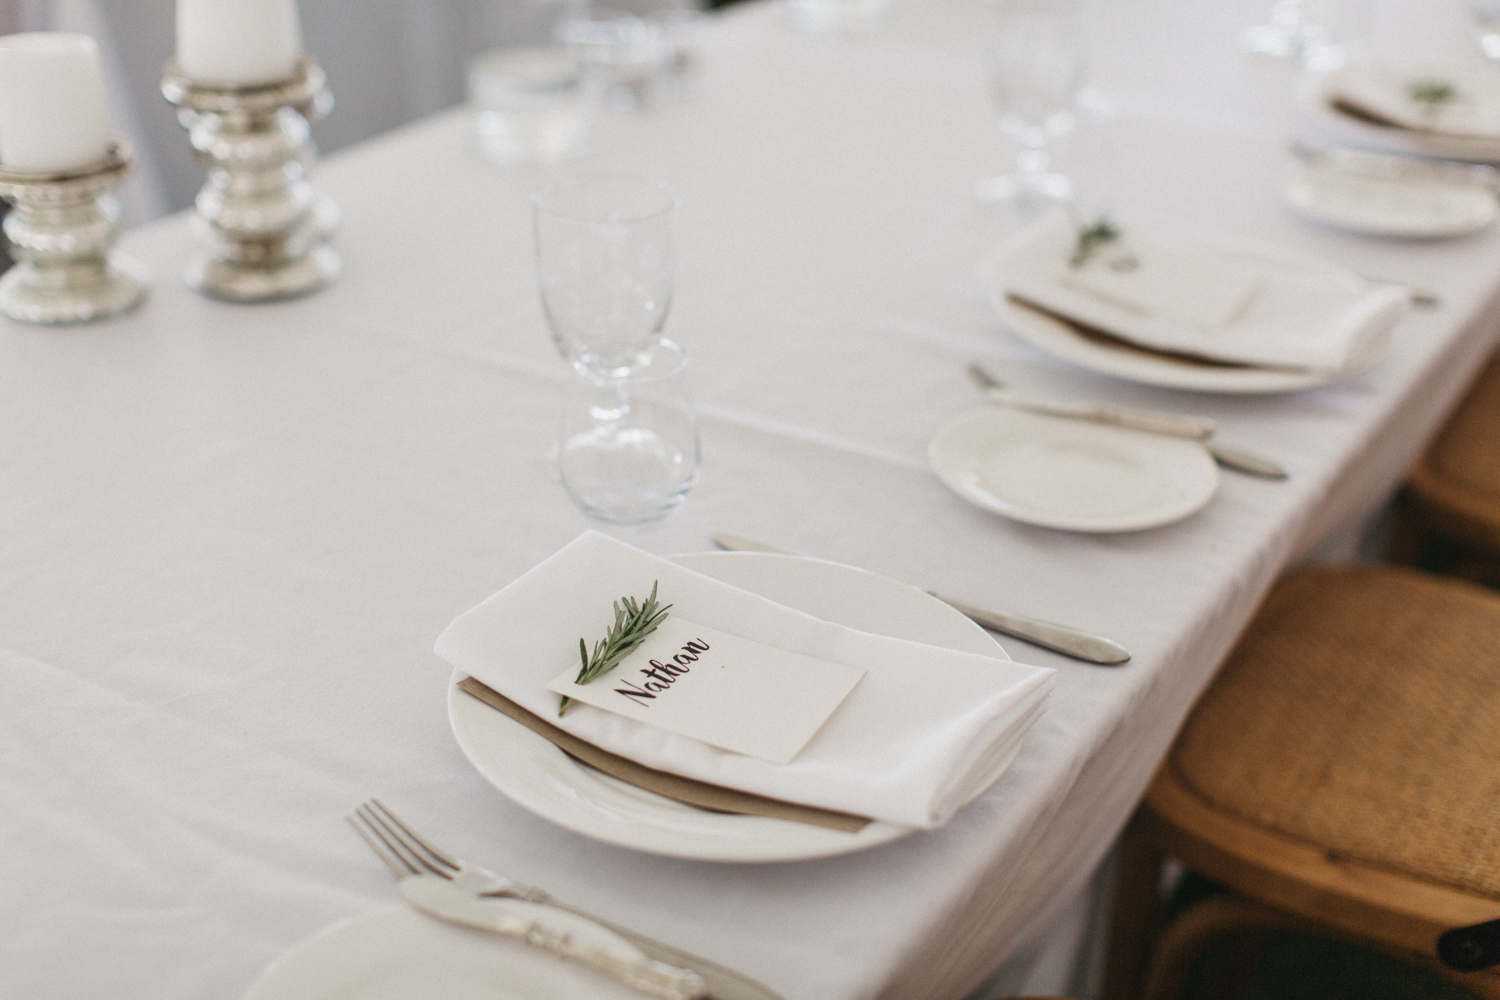 Mel-nathan-vinegrove-mudgee-hunter-valley-wedding112